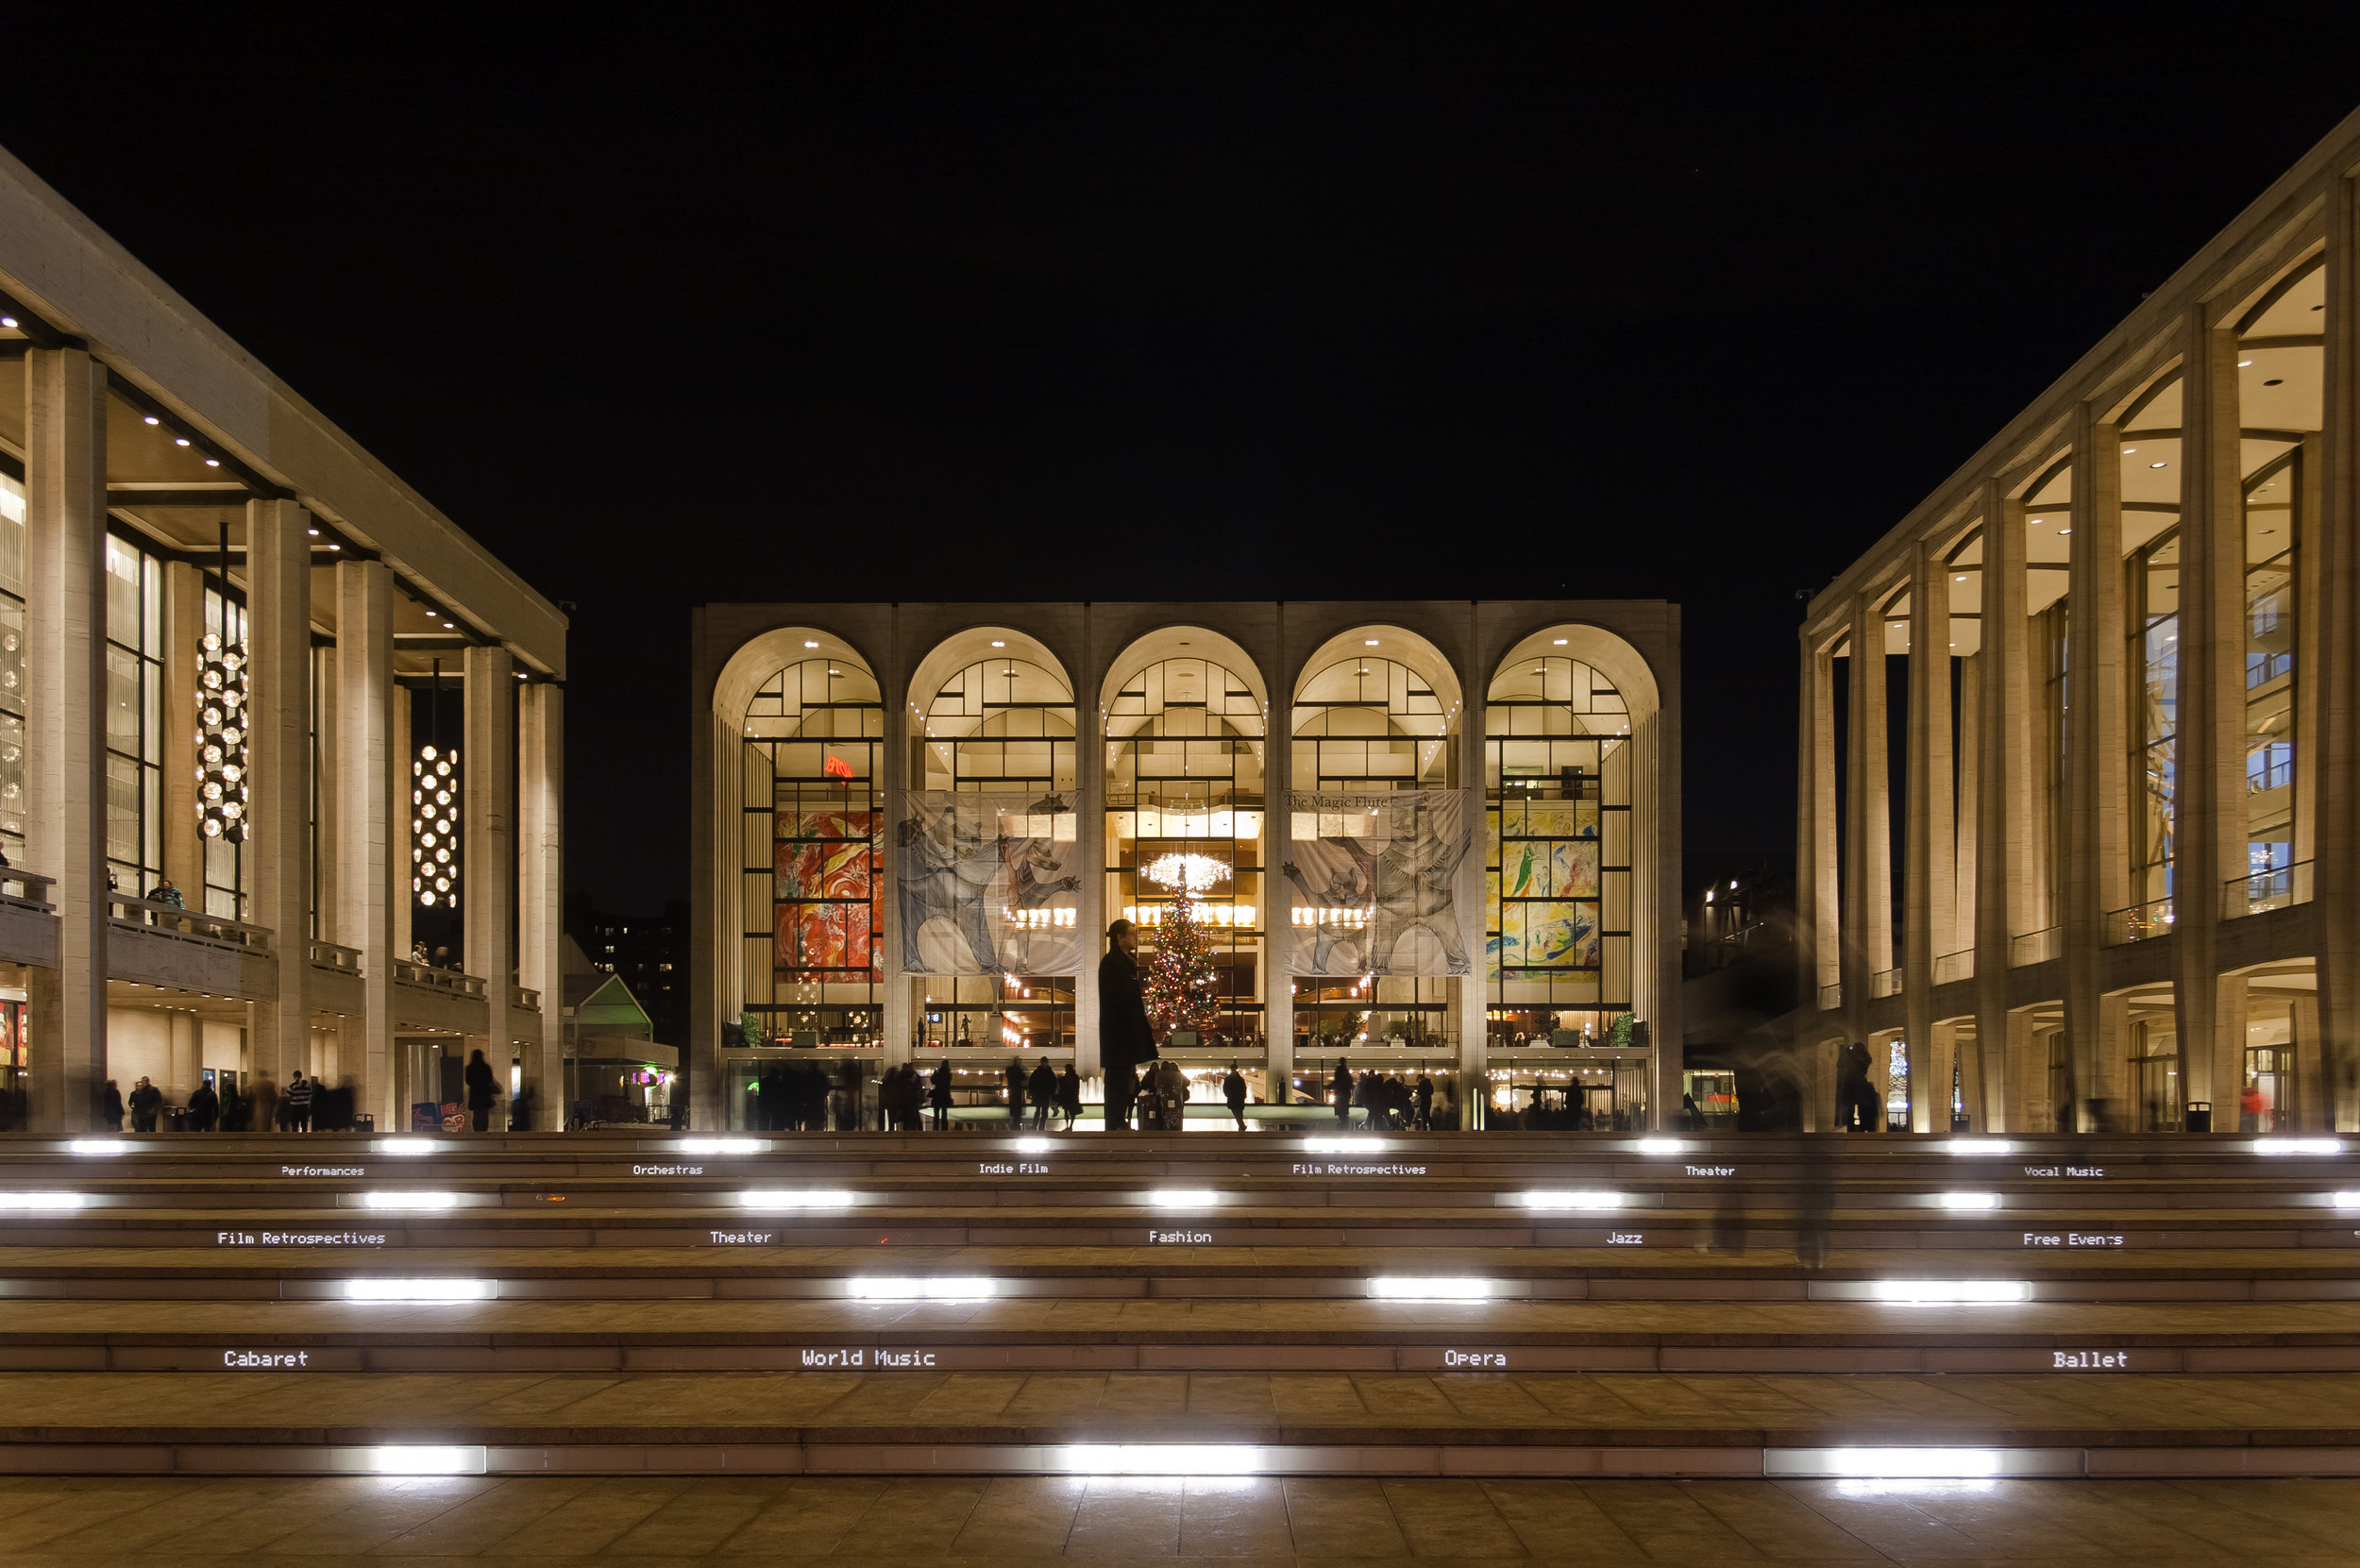 Lincoln_Center_Main.jpg